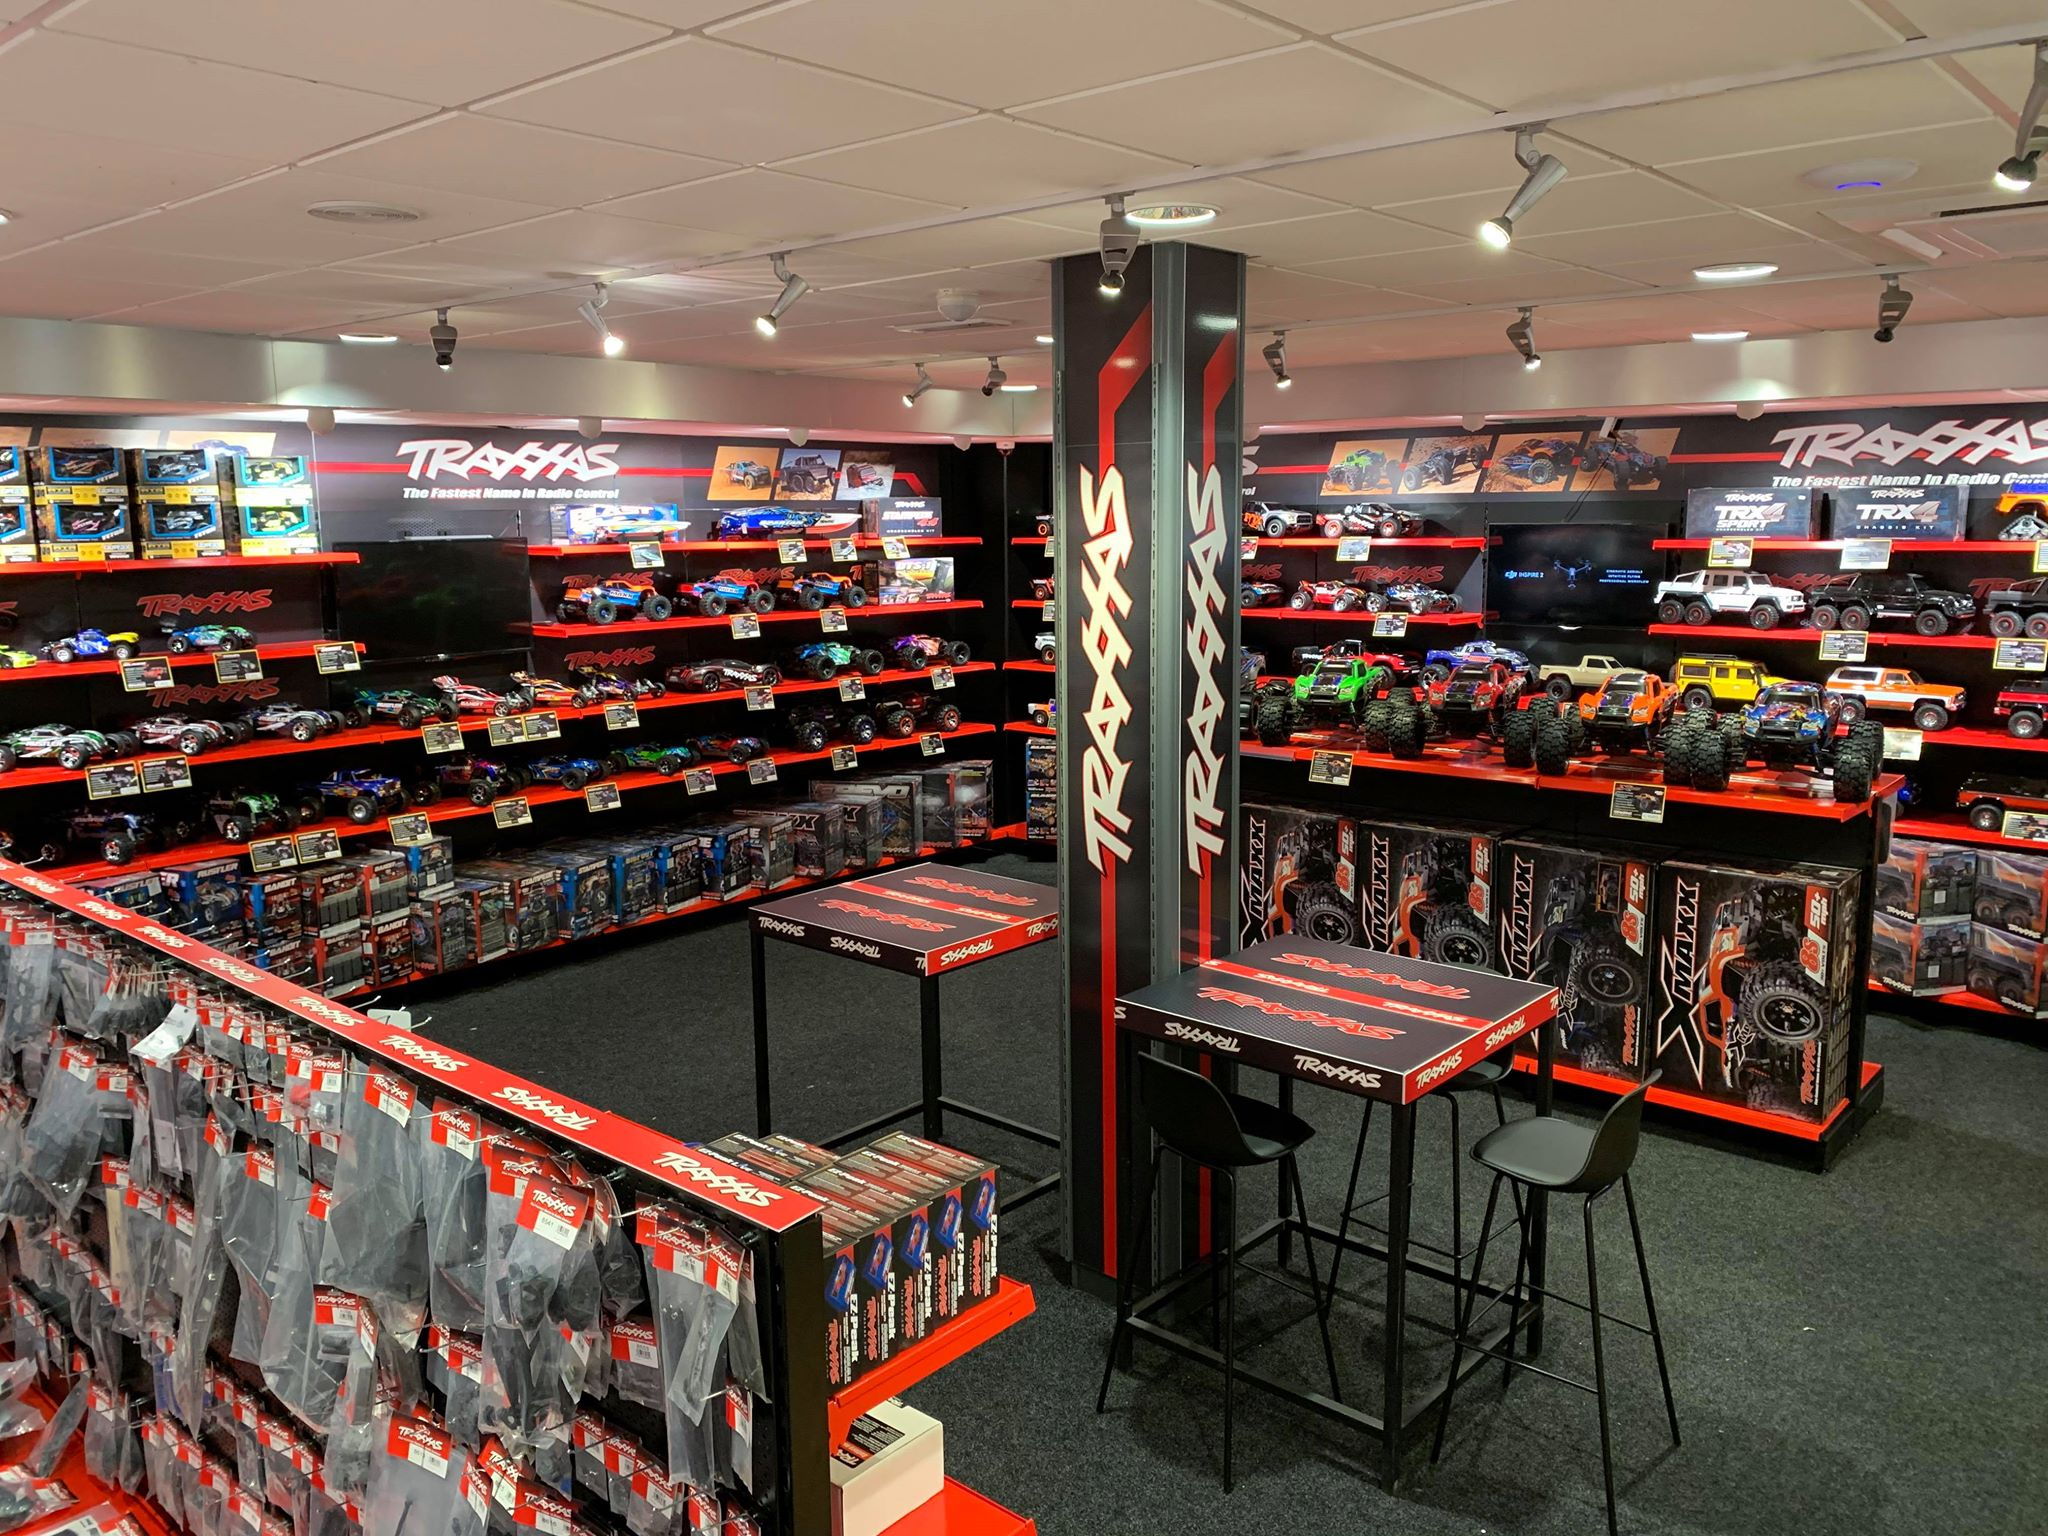 De Traxxas shop in shop is nu open!